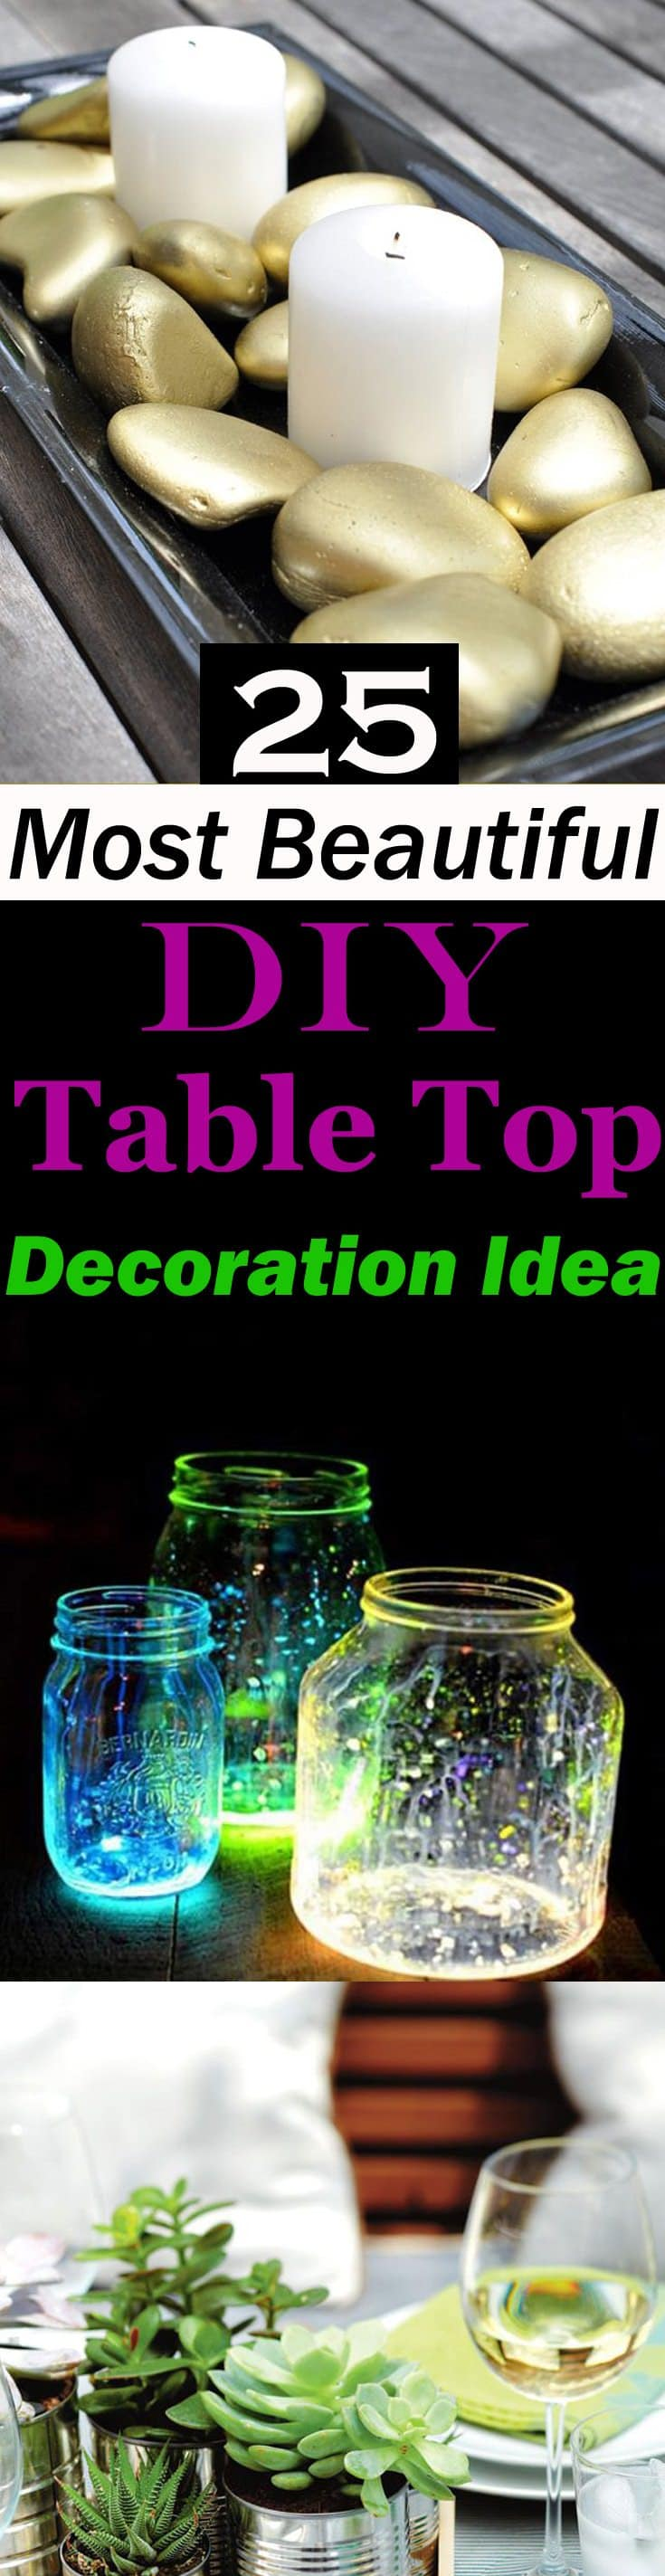 25 DIY Tabletop Decoration Ideas That Youu0027ll Love To Follow. Easy And  Exciting